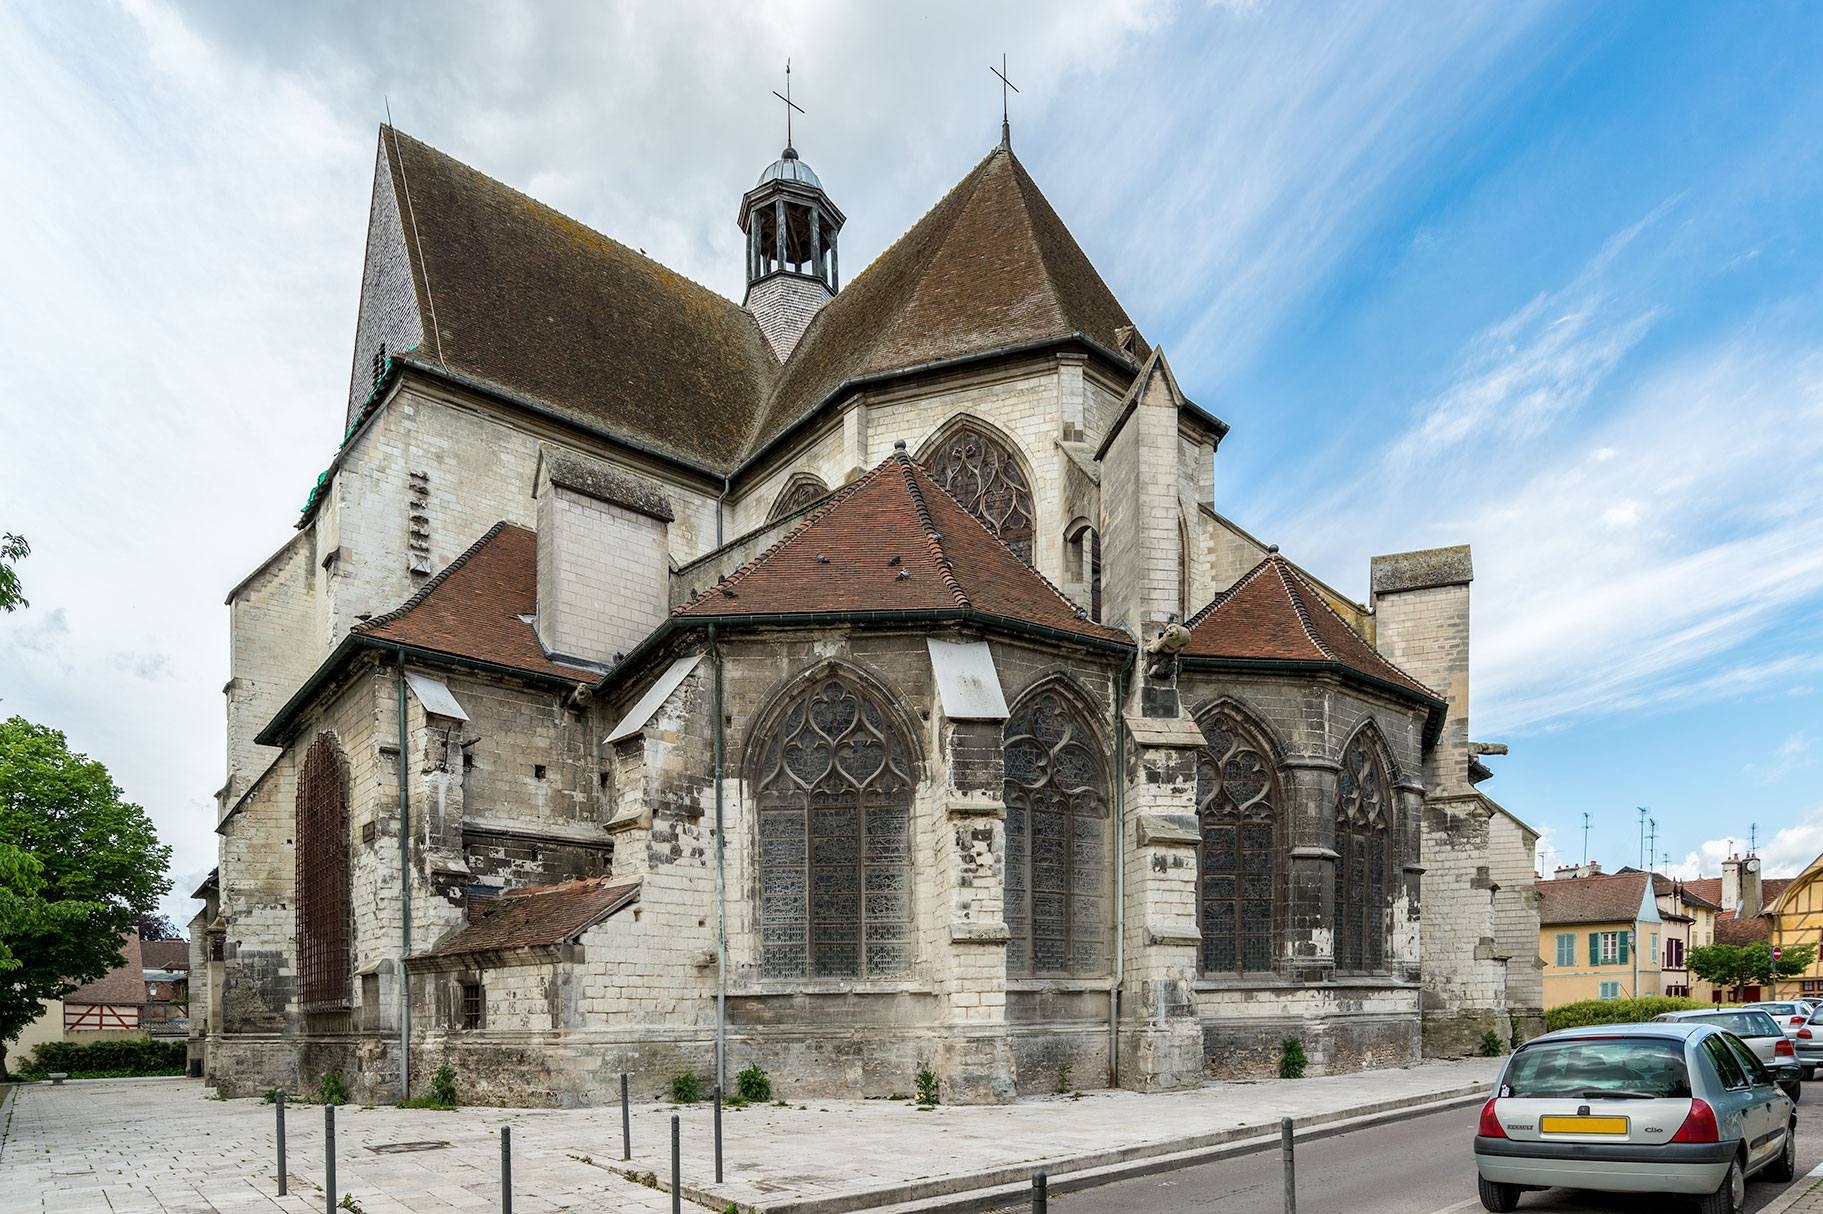 East view of the Église Saint-Nizier in Troyes, France - Daniel Vorndran/Wikimedia